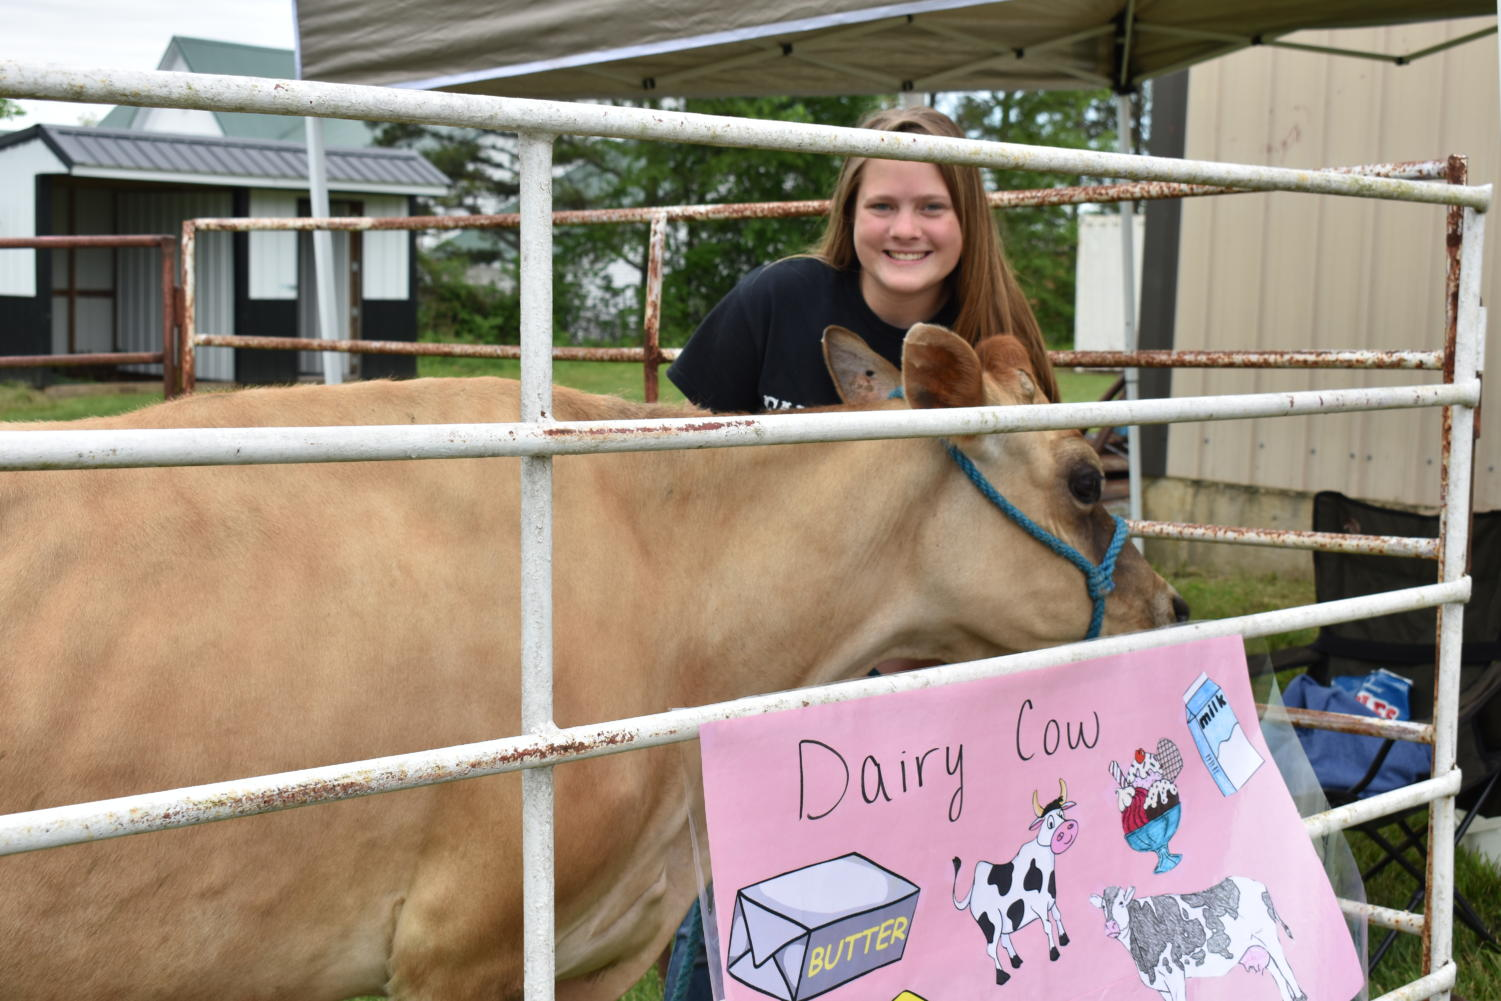 Bailey Richardson (10) poses with her dairy cow.